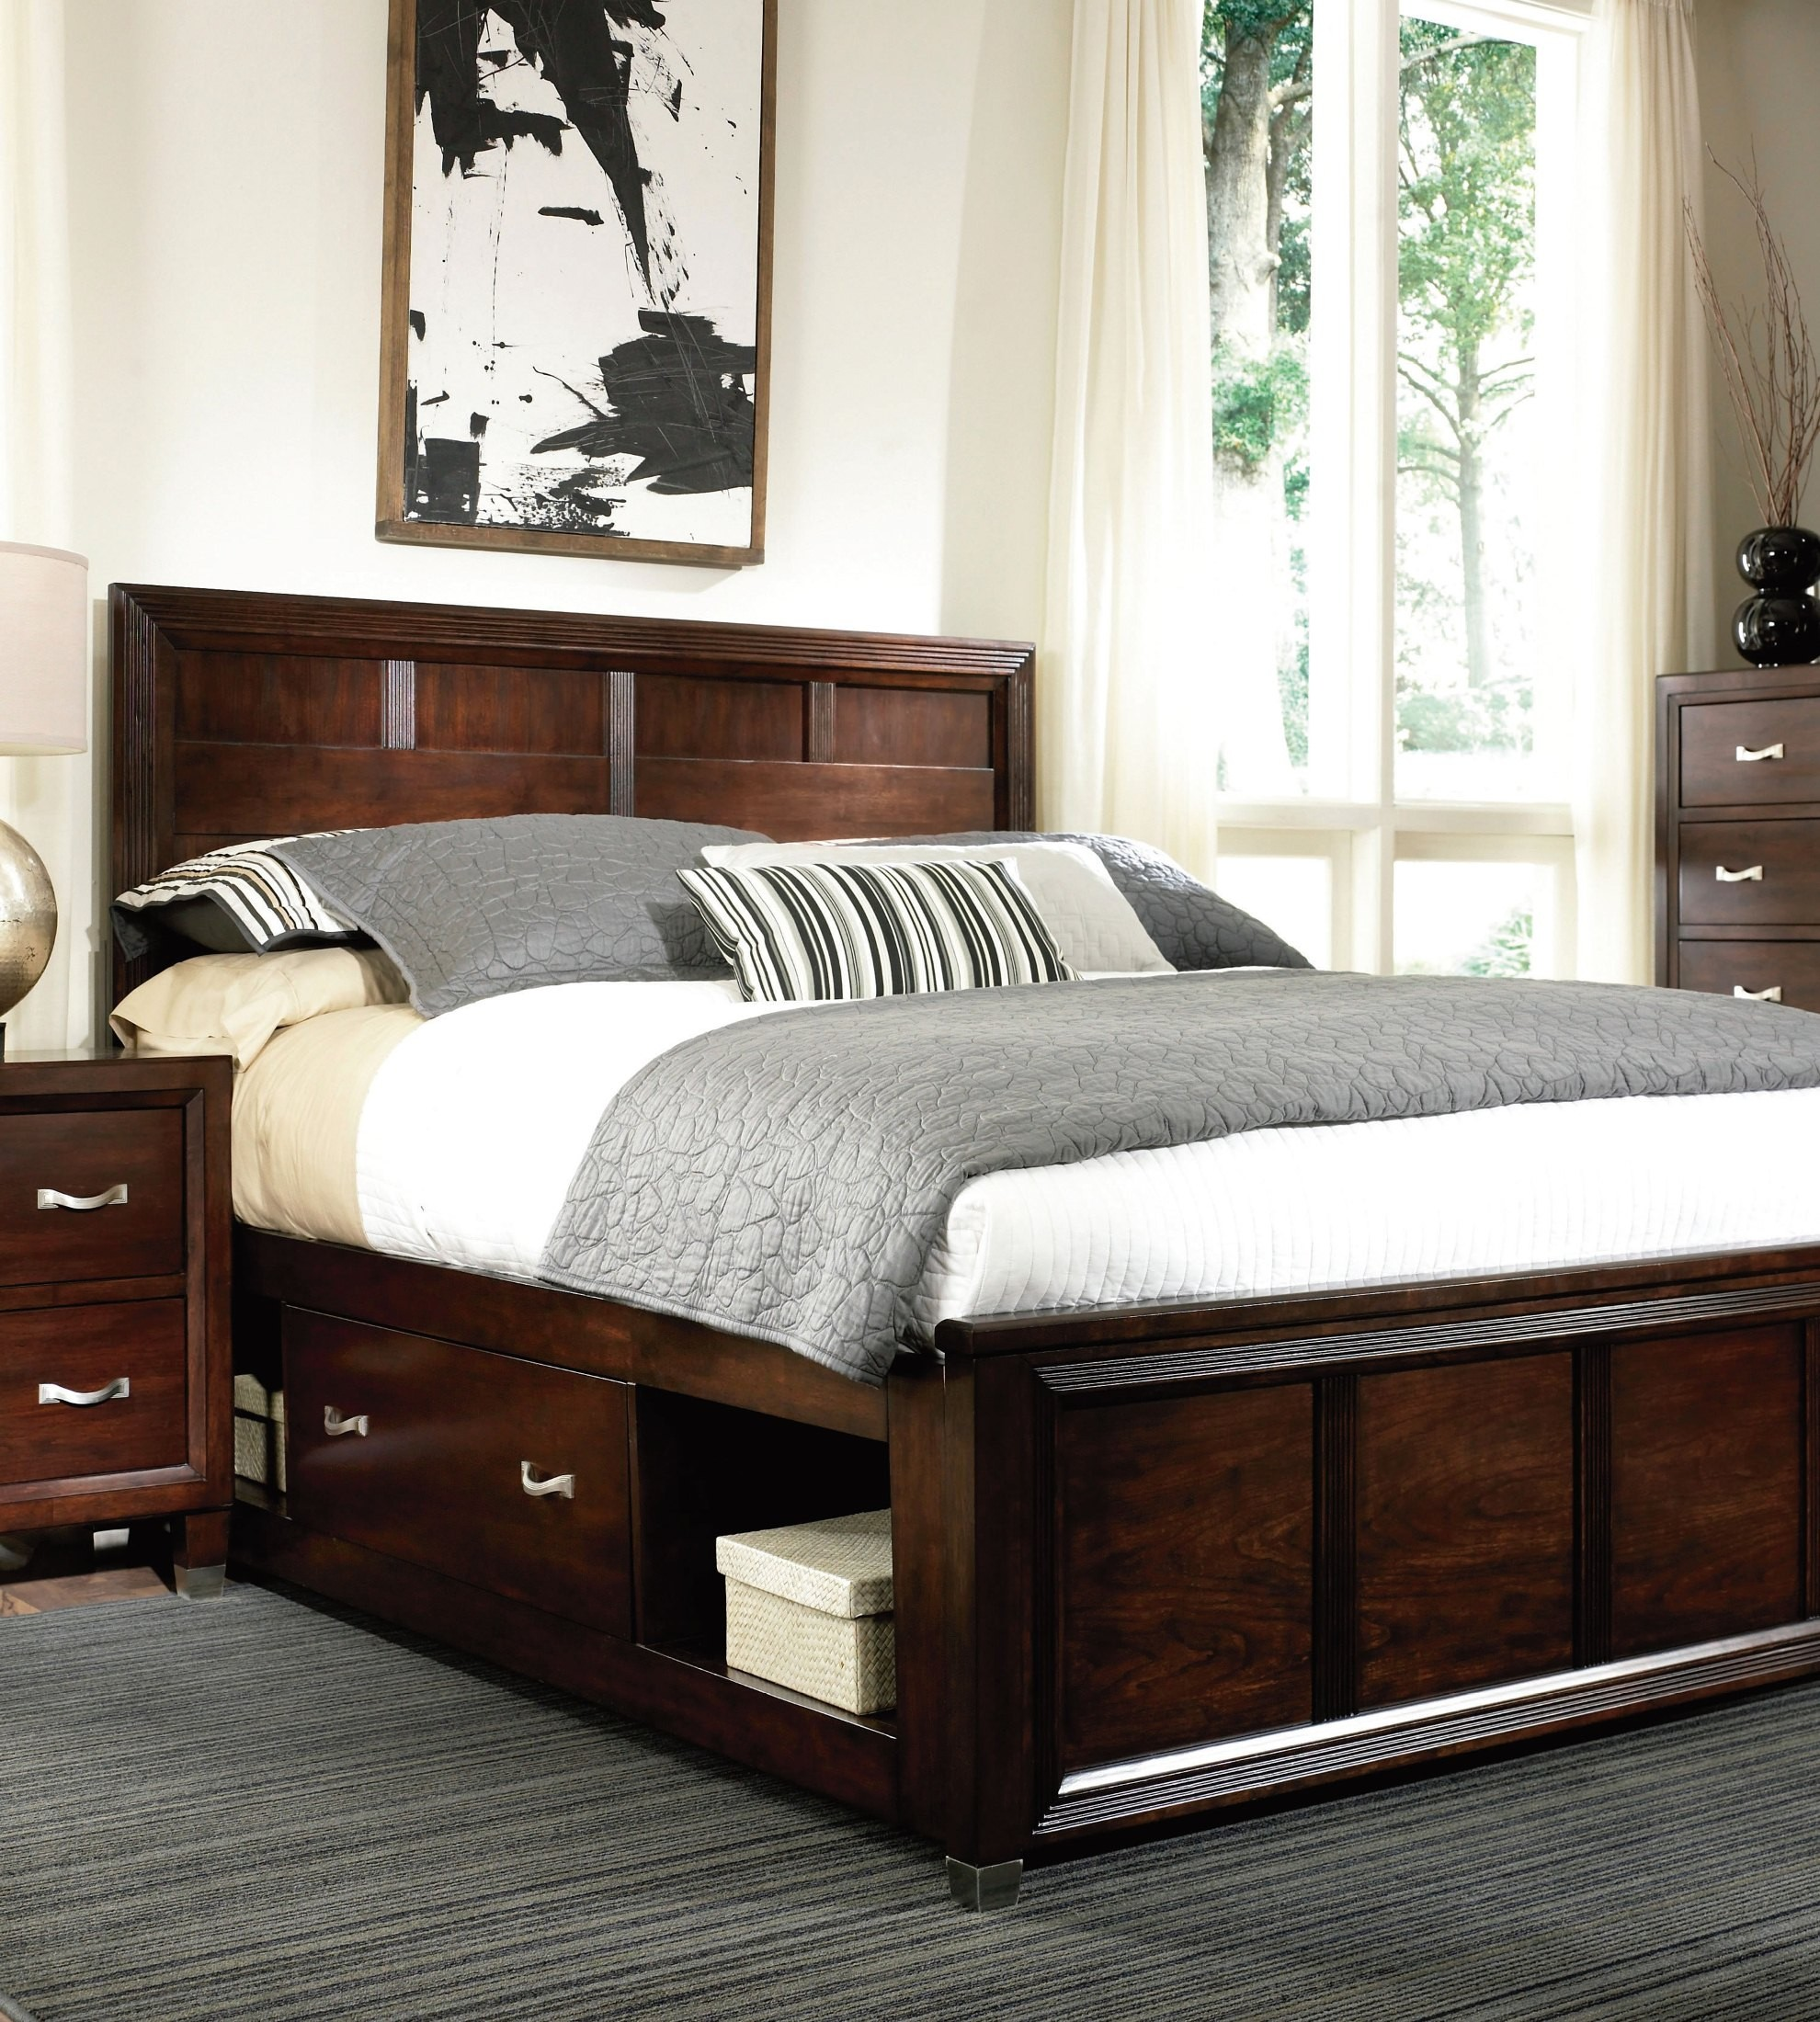 Eastlake 2 King Storage Panel Bed 4264 252 263 477 478